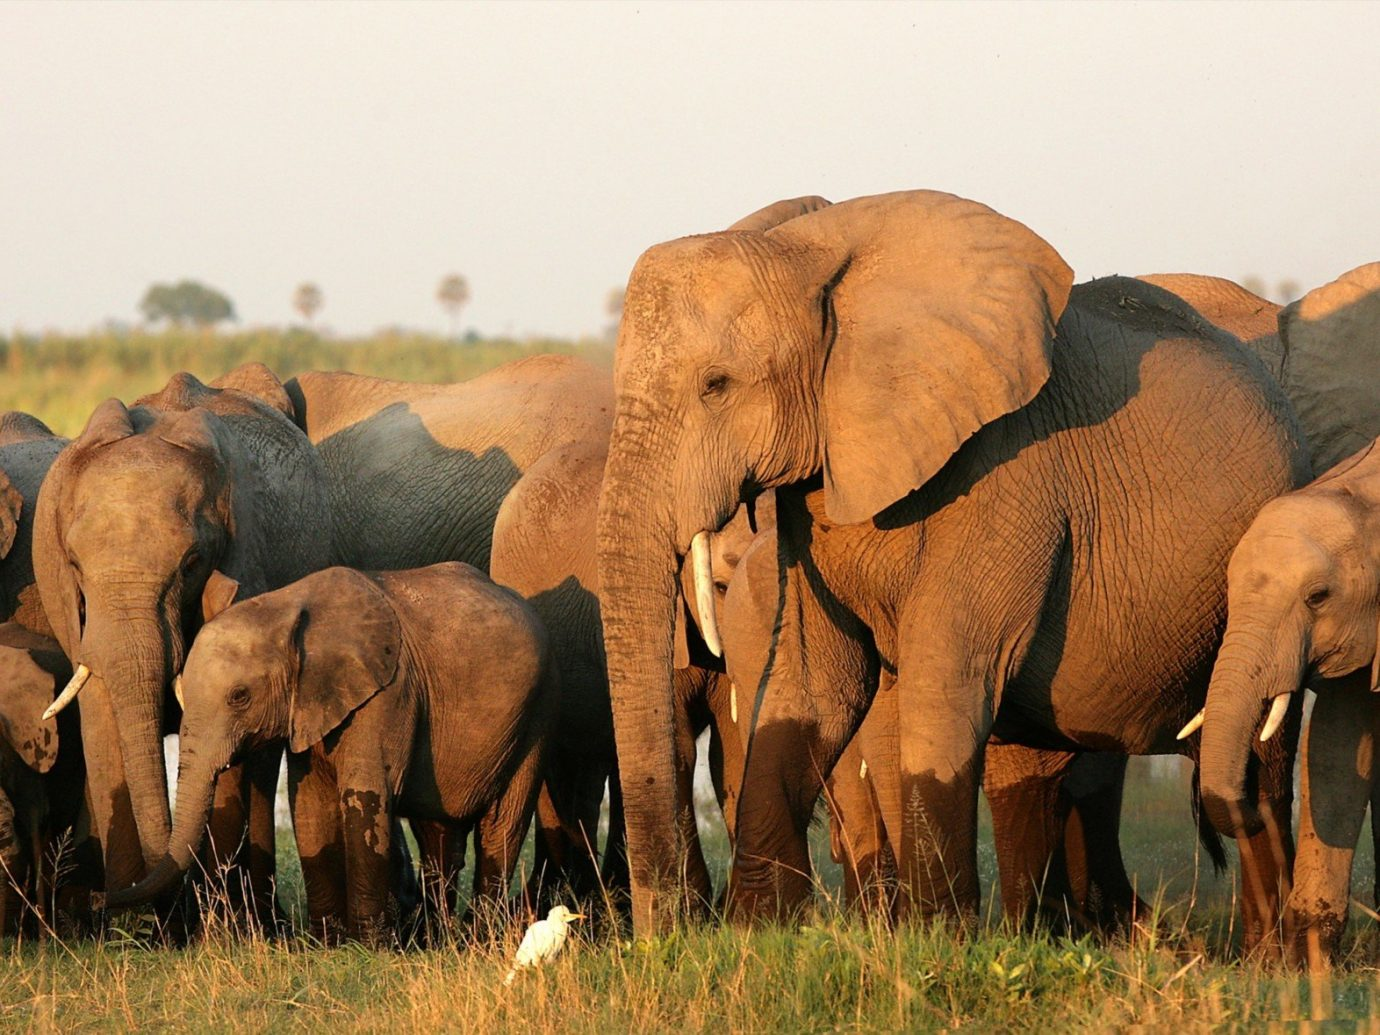 Trip Ideas grass outdoor animal herd field mammal pasture Wildlife elephant fauna grassland ecosystem grazing indian elephant standing group savanna elephants and mammoths mustang horse adult prairie Safari baby african elephant Adventure grassy Family lush